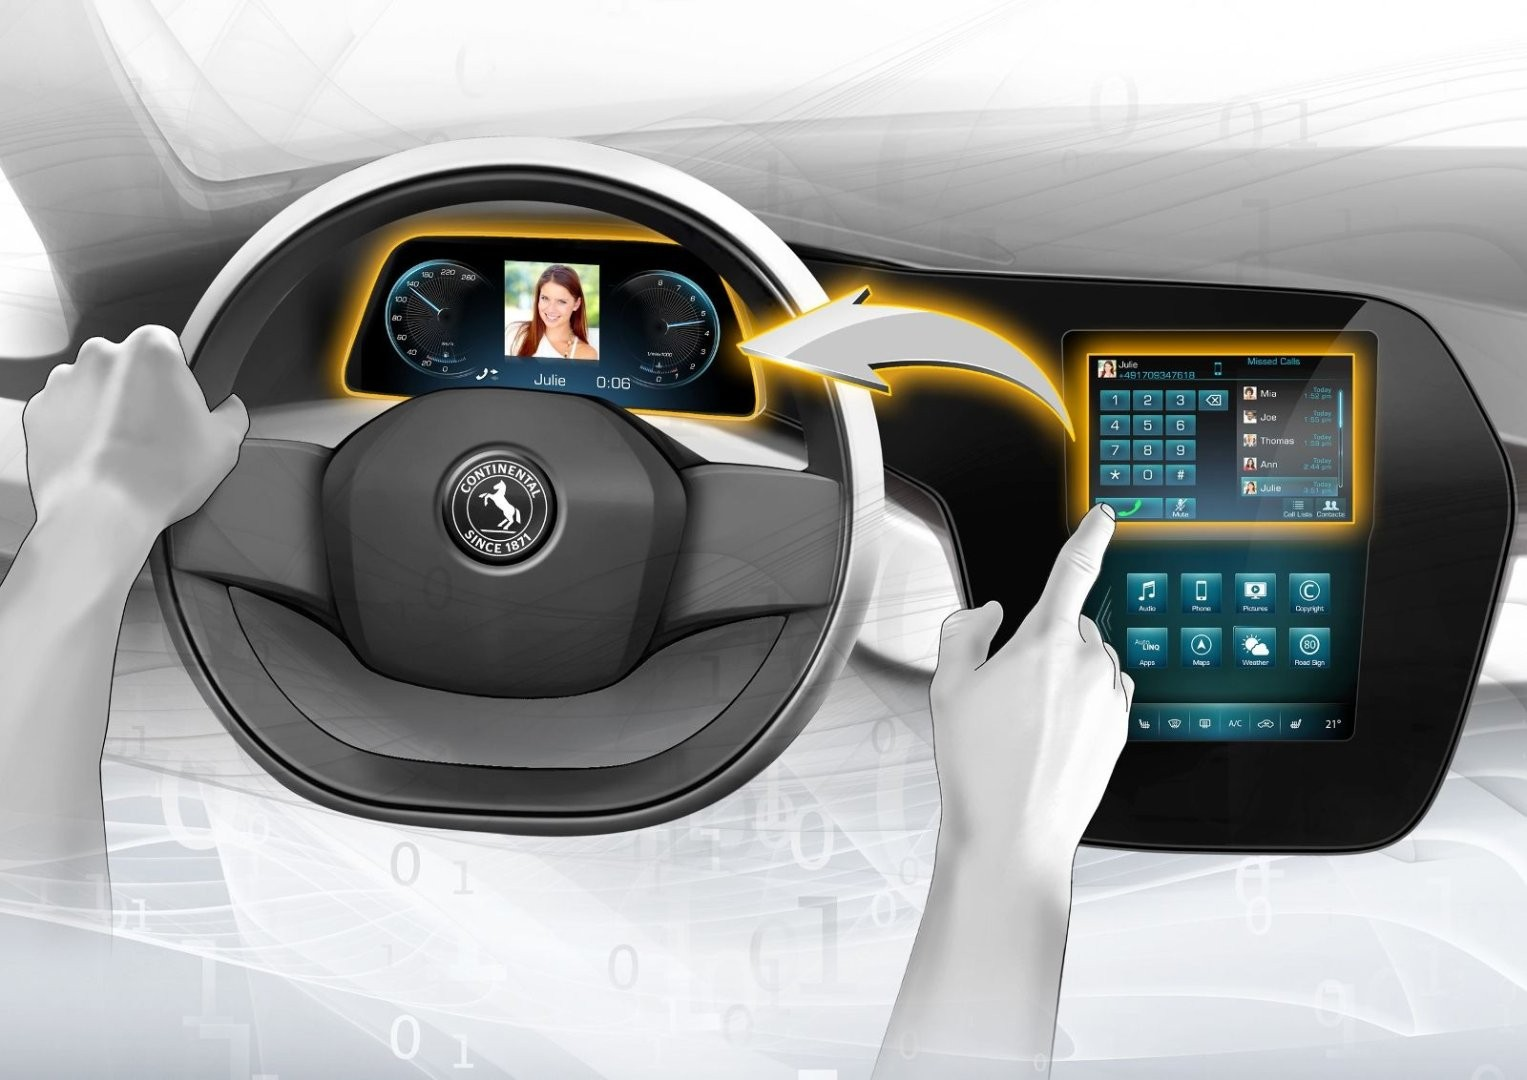 next generation of head units and infotainment platforms